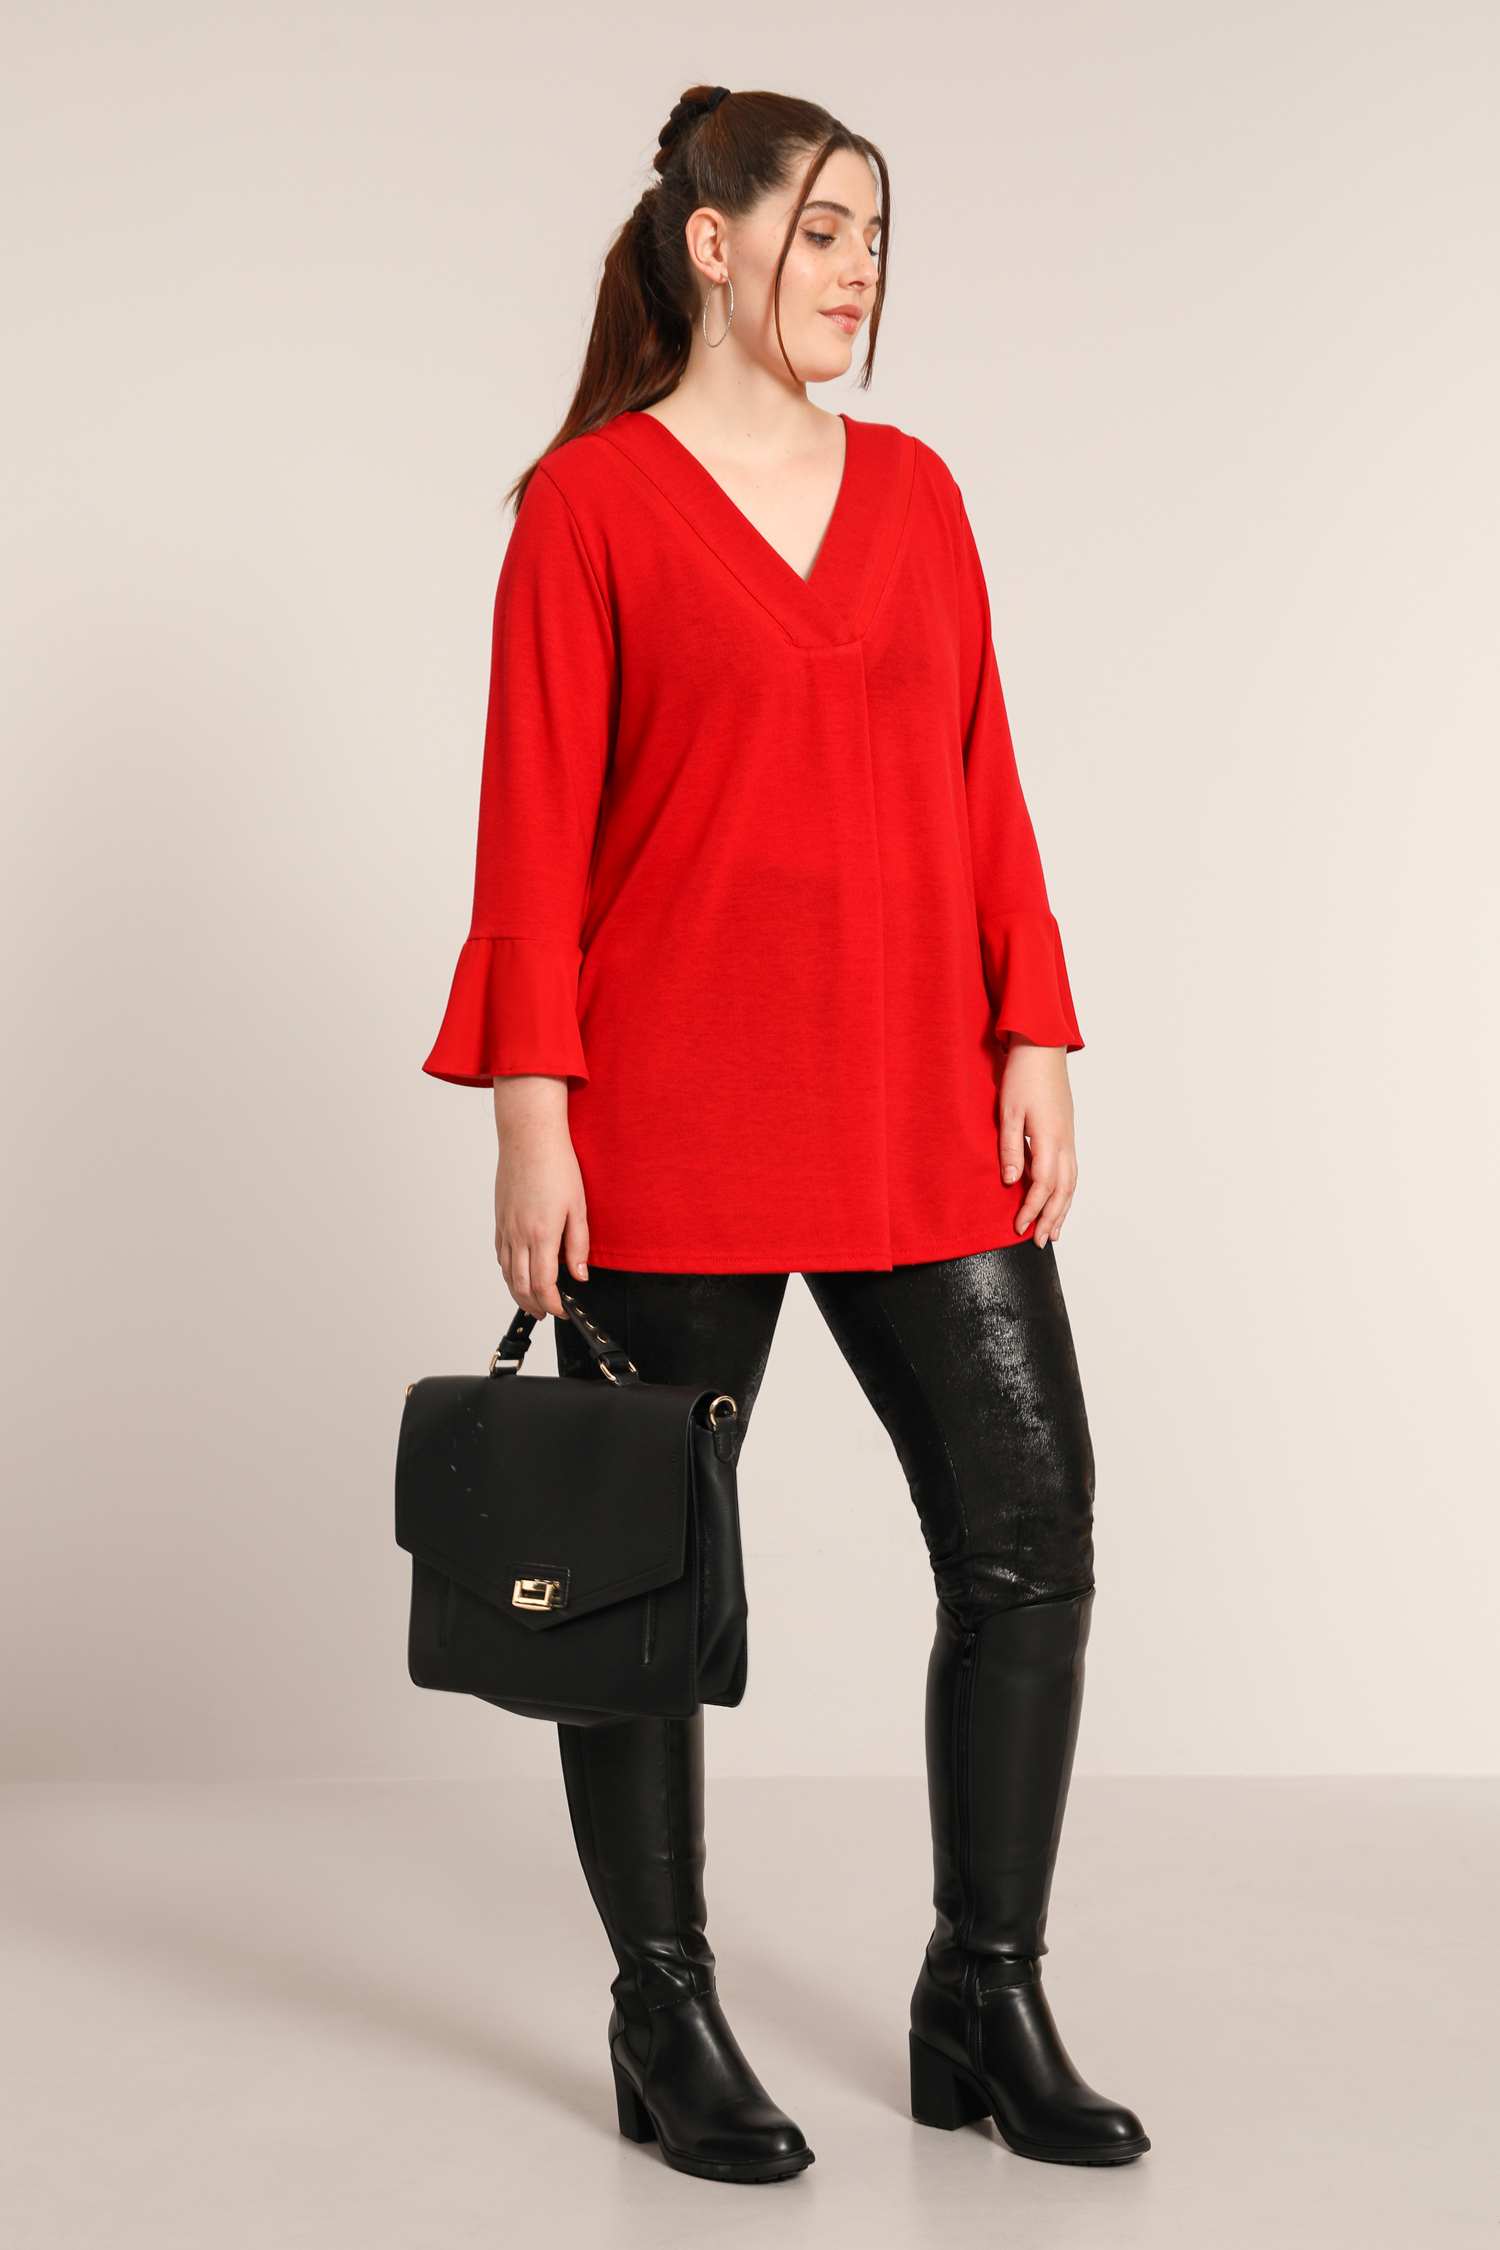 Fine knit sweater with ruffled sleeve